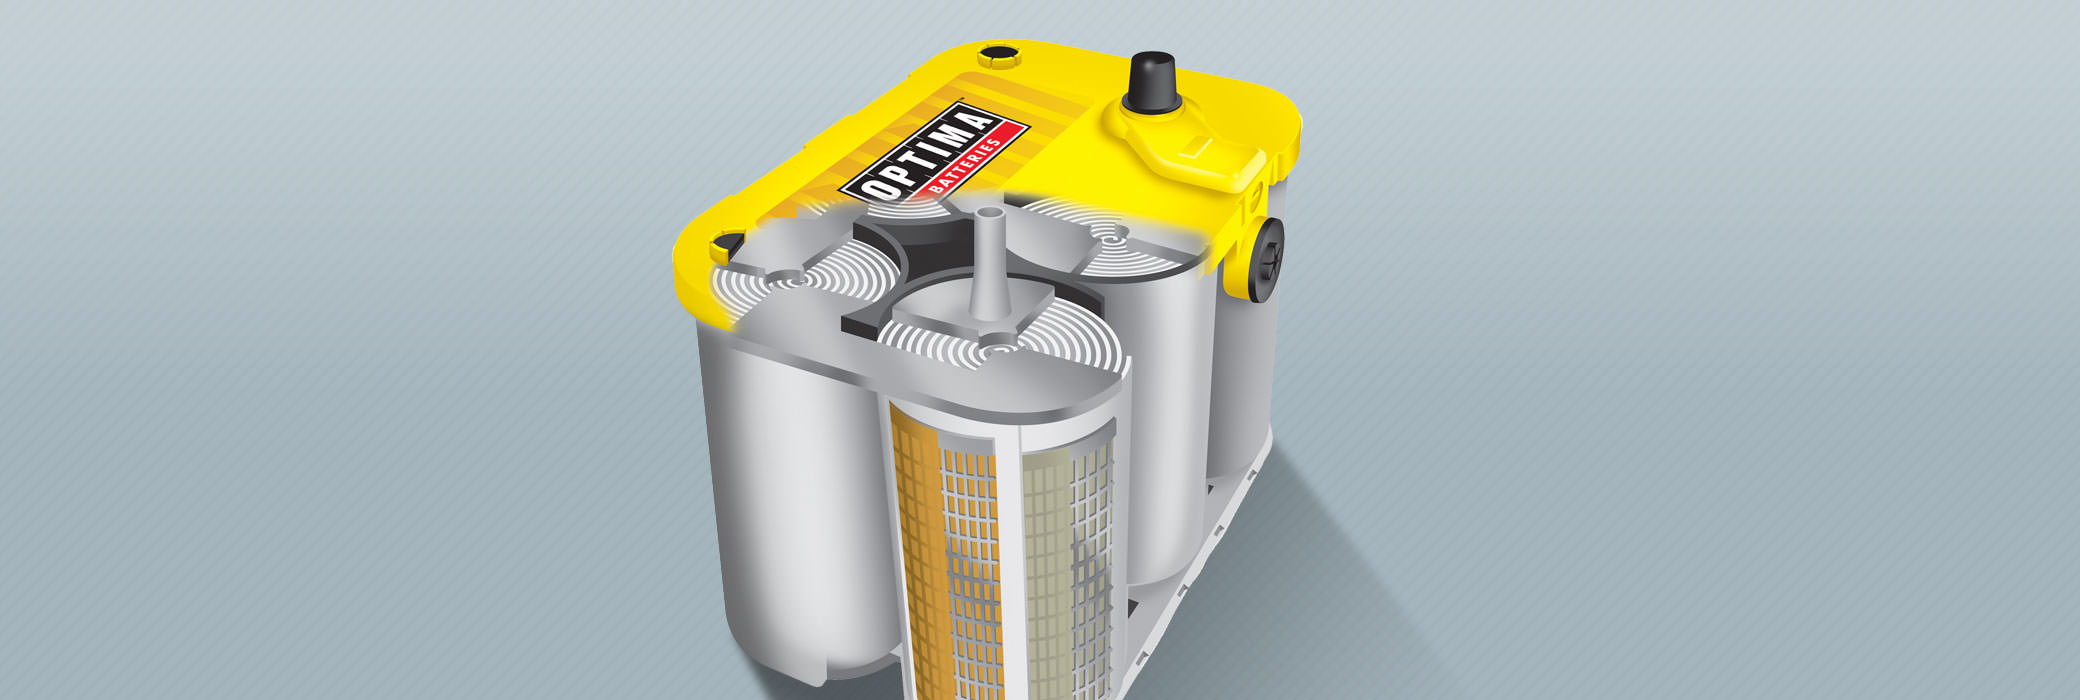 OPTIMA Batteries with SPIRALCELL TECHNOLOGY have unmatched power, reliability and durability.